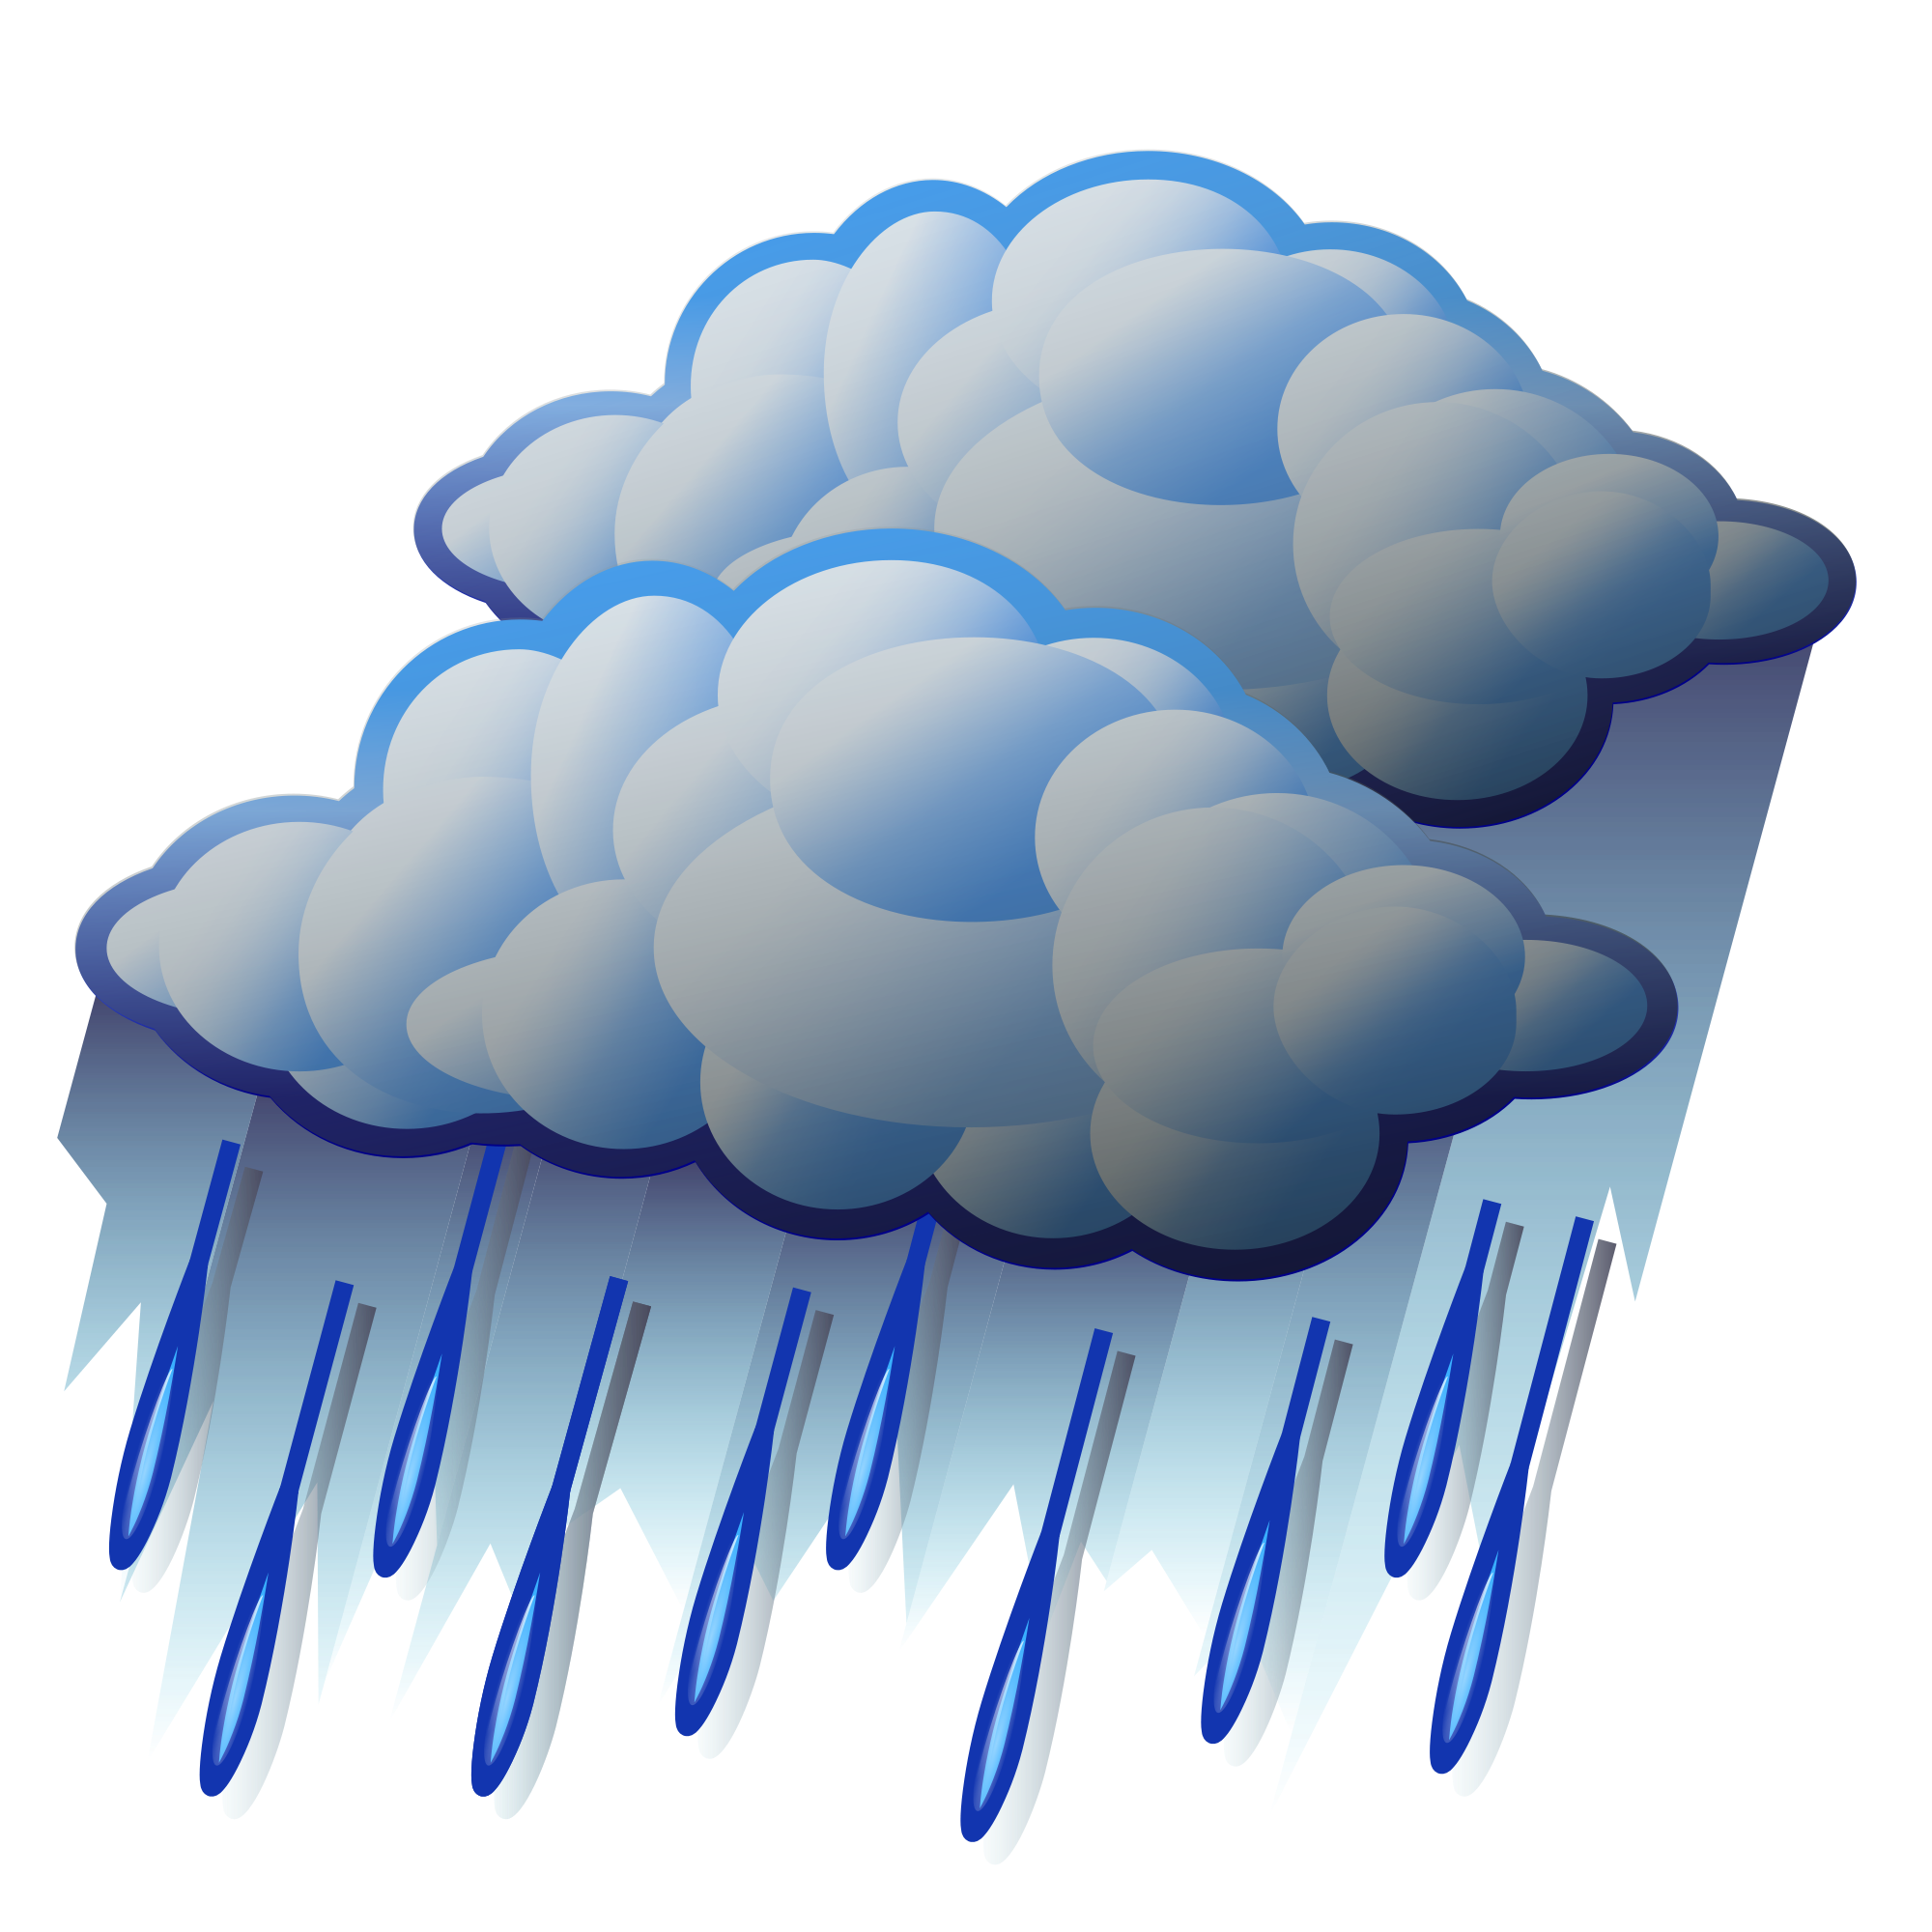 Hosue clipart raining A rain a clipart house